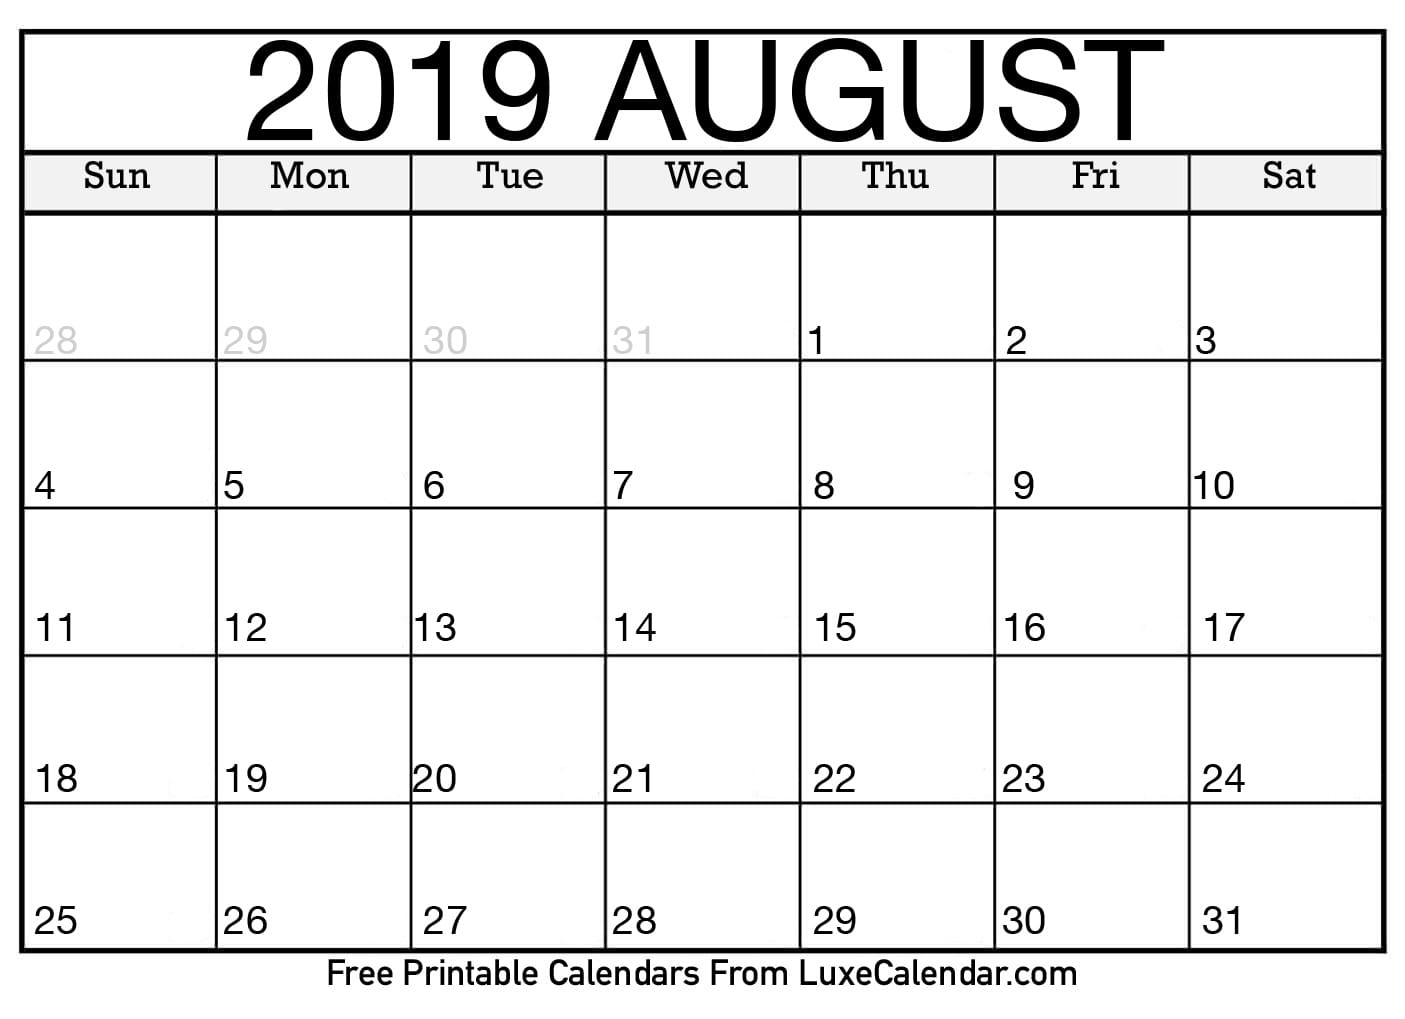 Blank August 2019 Calendar Printable - Luxe Calendar inside Blank Calendar To Write On August